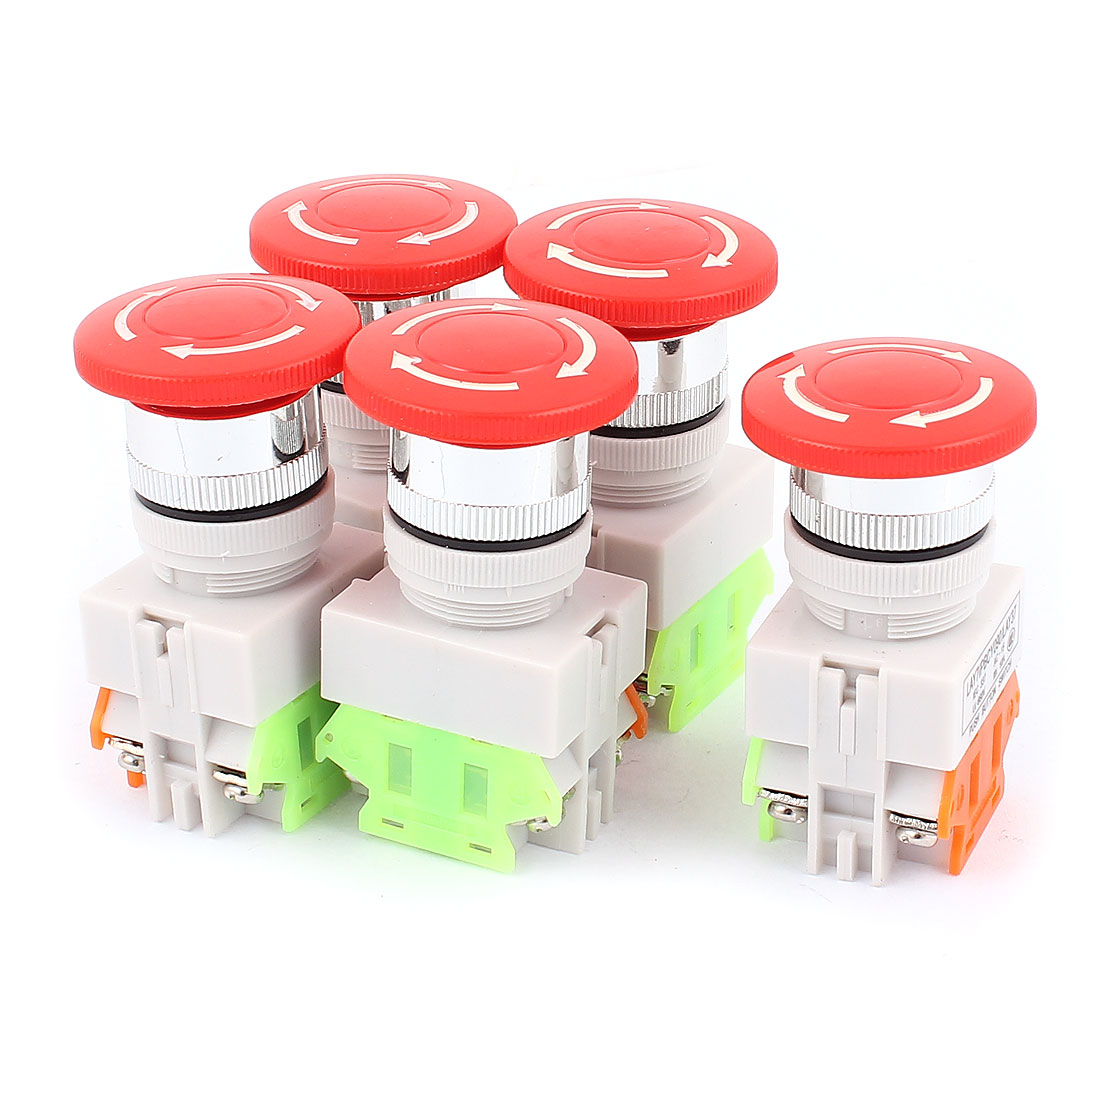 5PCS AC 600V 10A Self-locking Emergency Stop Red Mushroom Push Switch